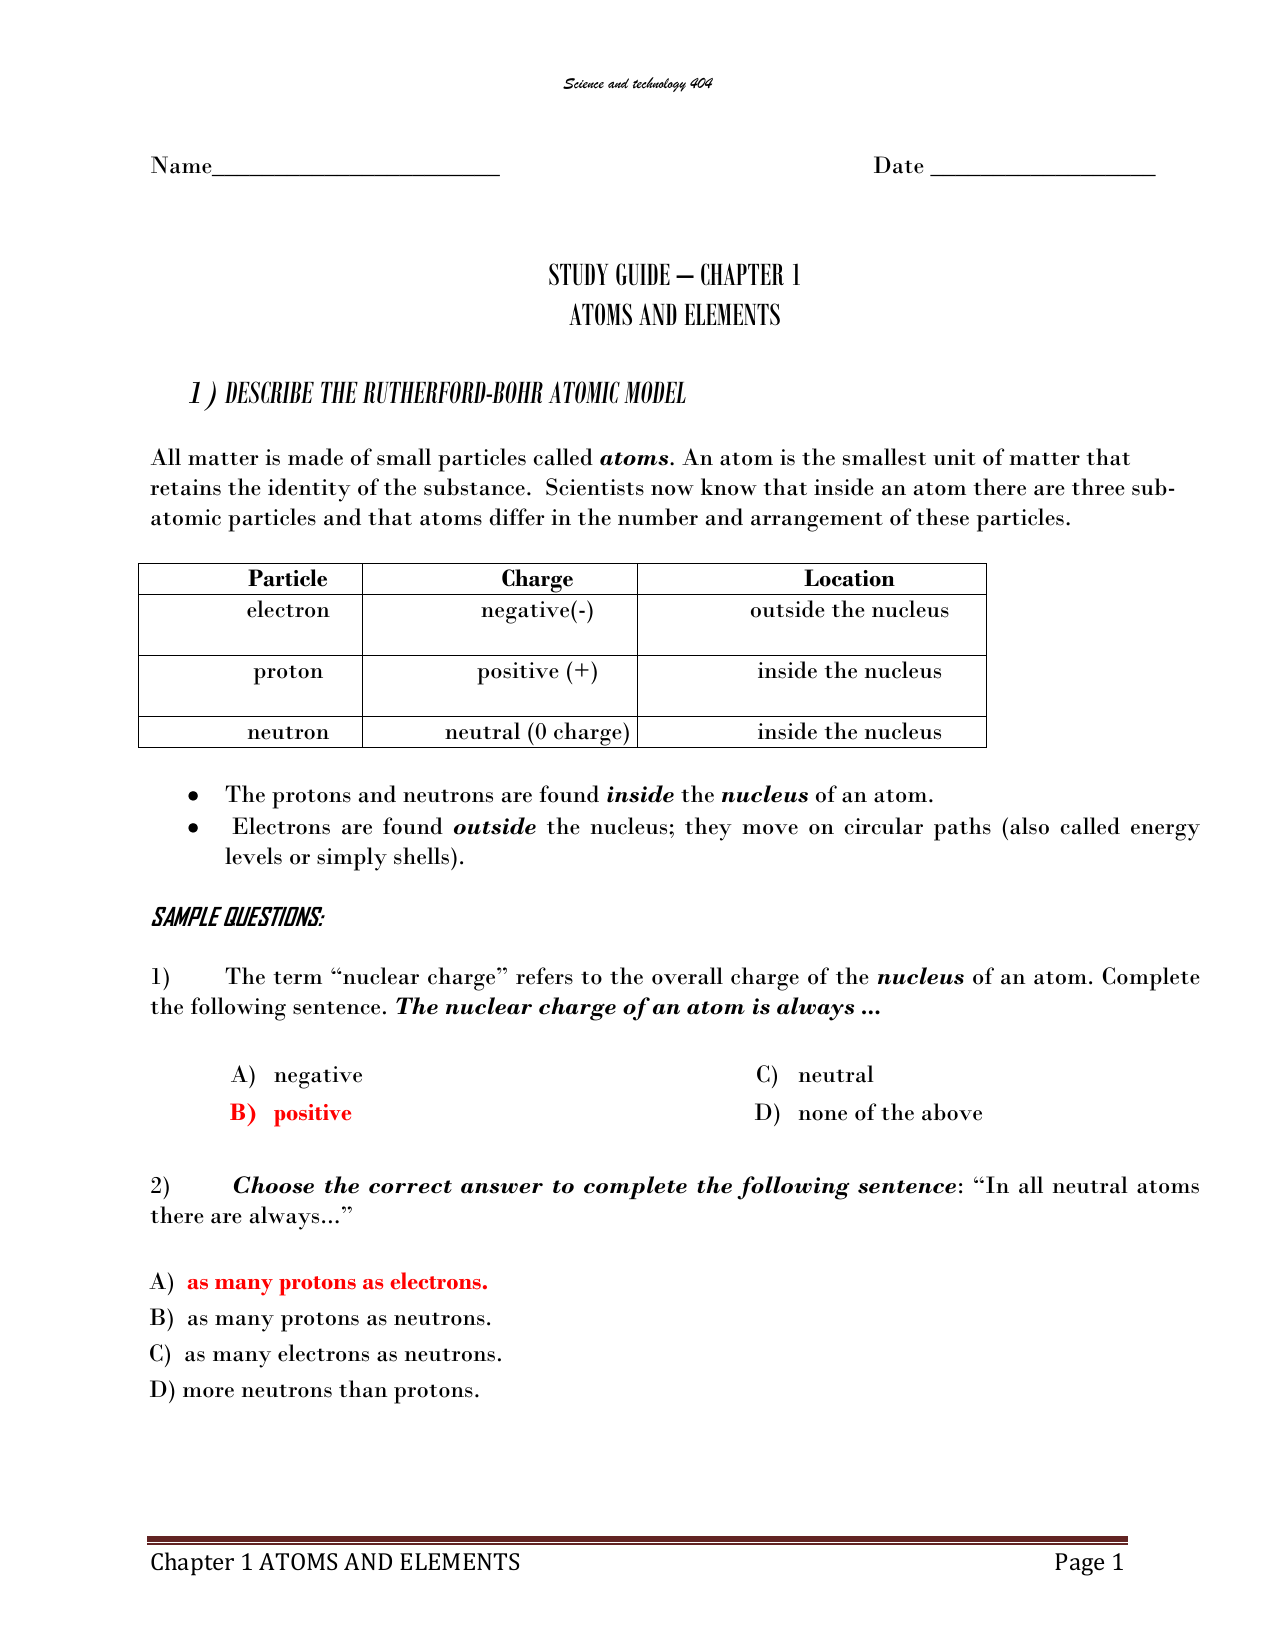 Arrangement Of Electrons In Atoms Worksheet Answers